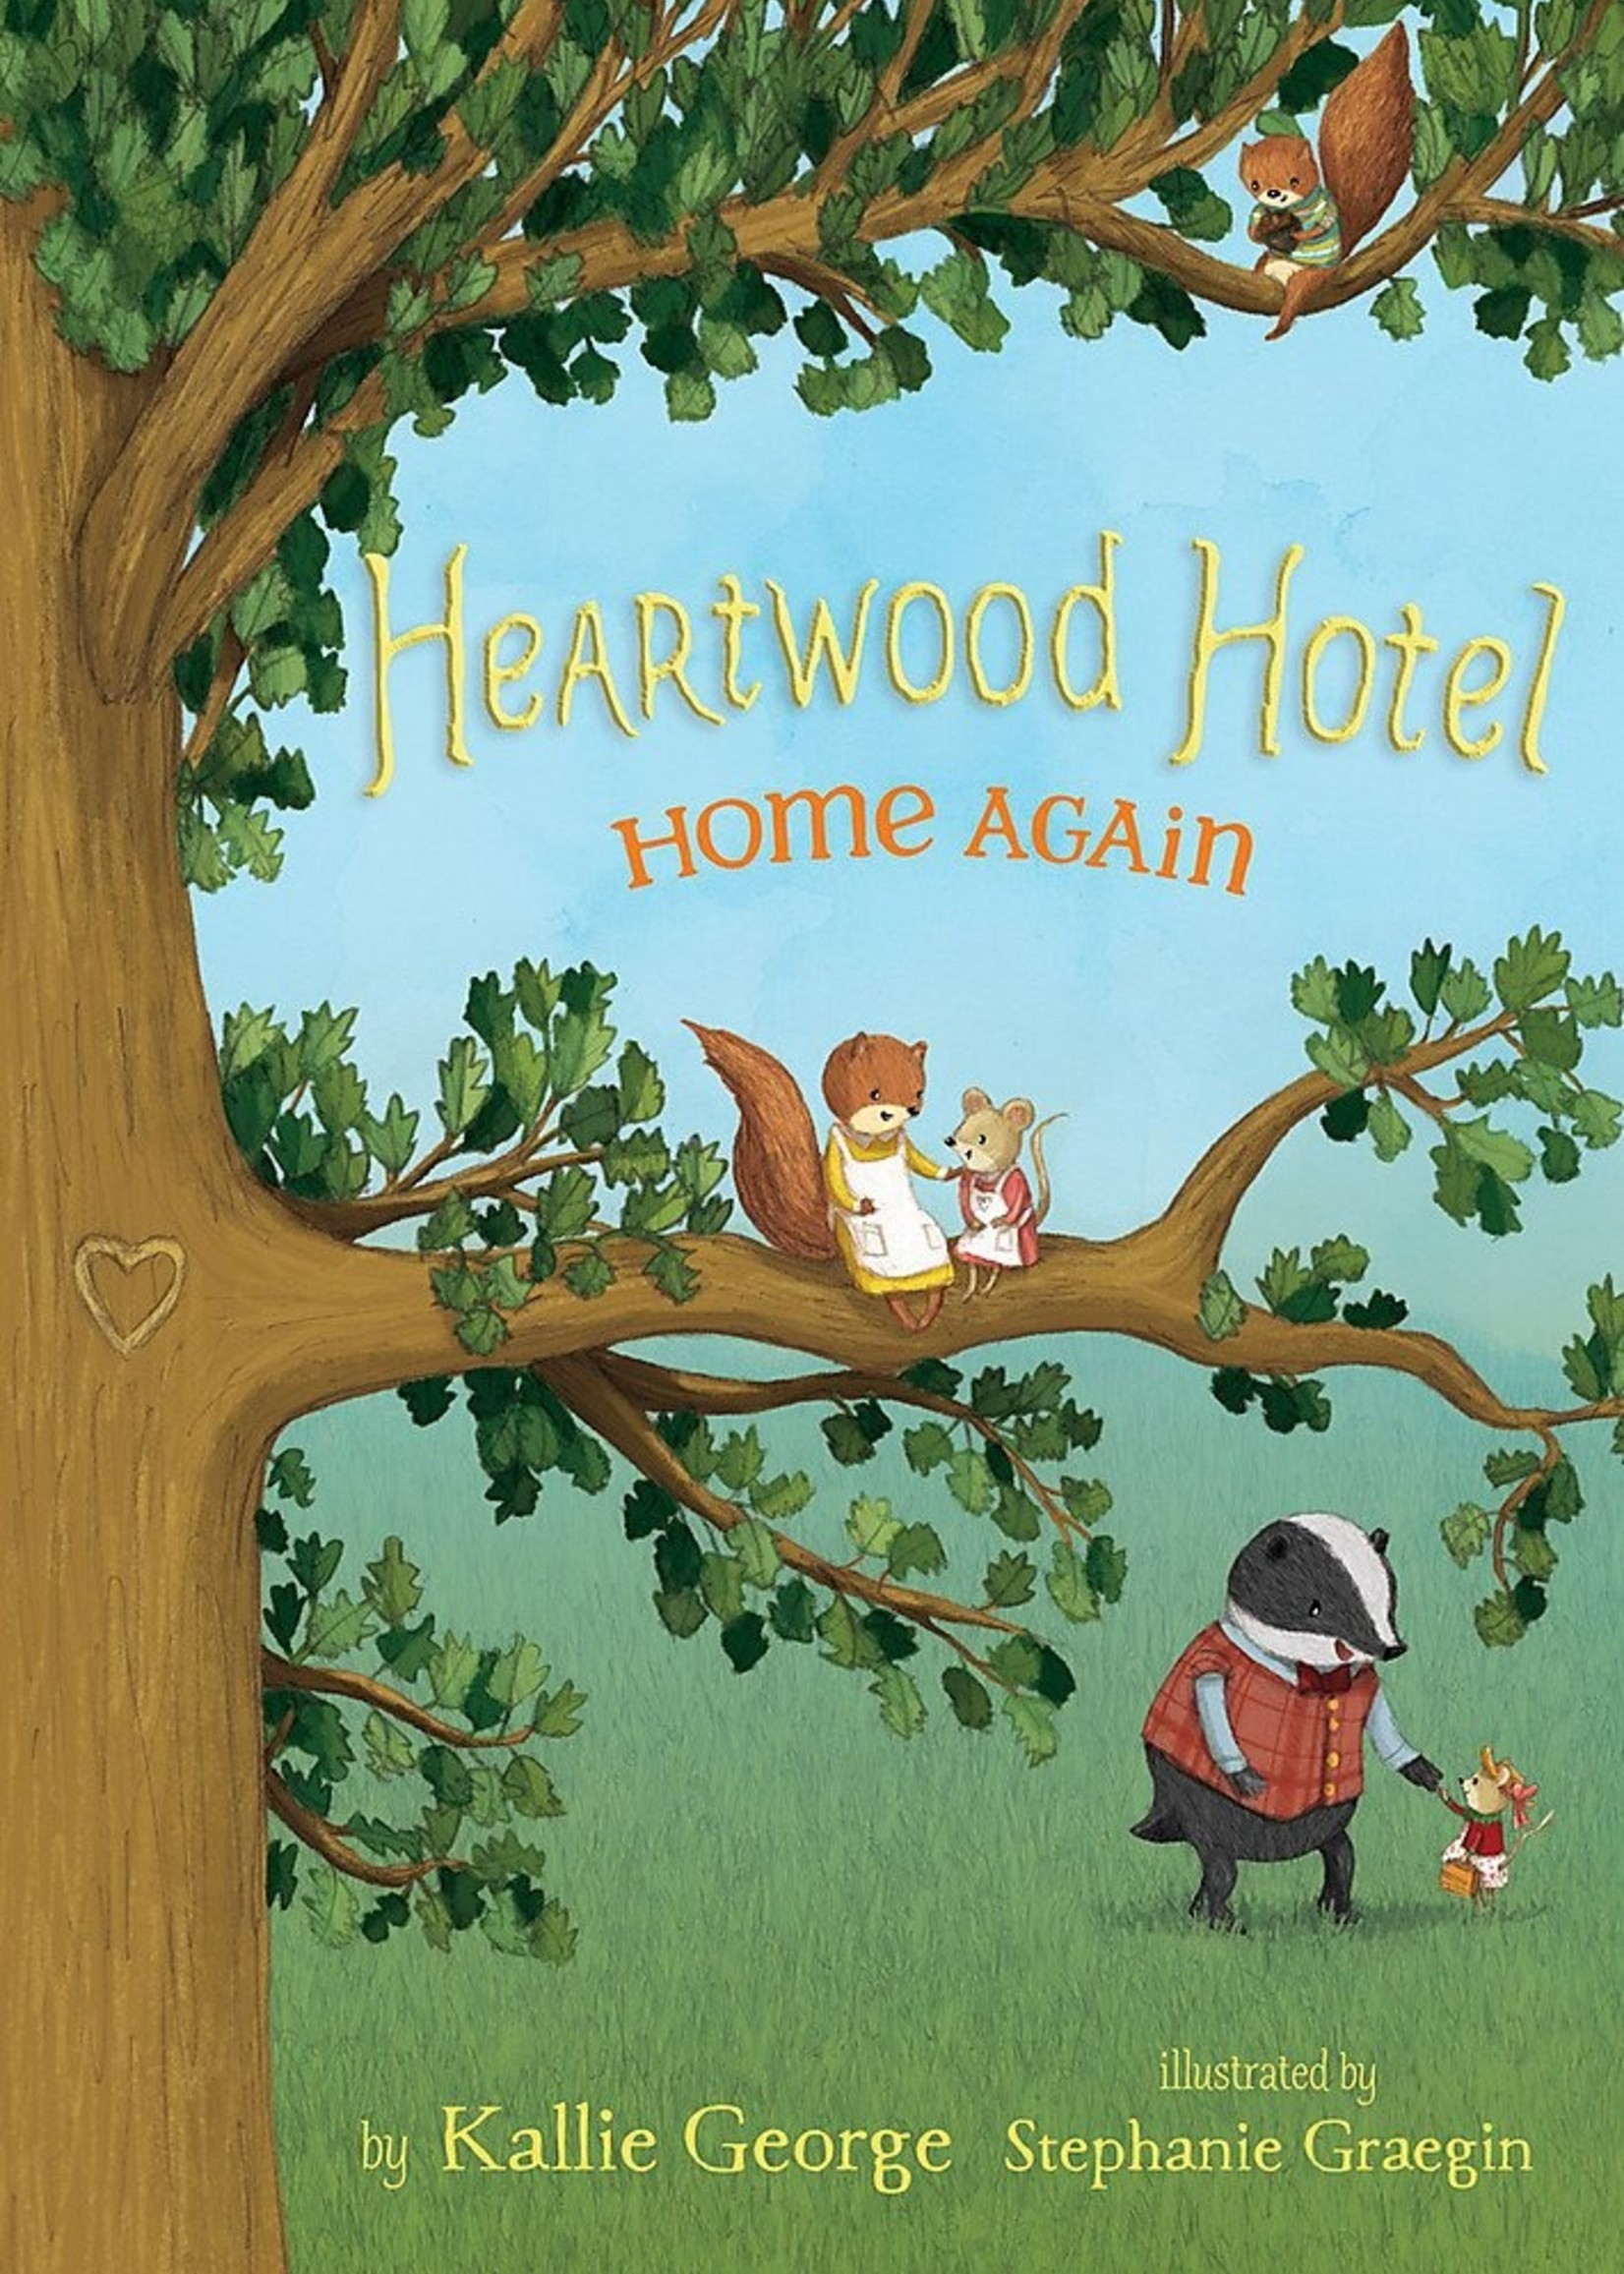 Heartwood Hotel #04, Home Again - Paperback